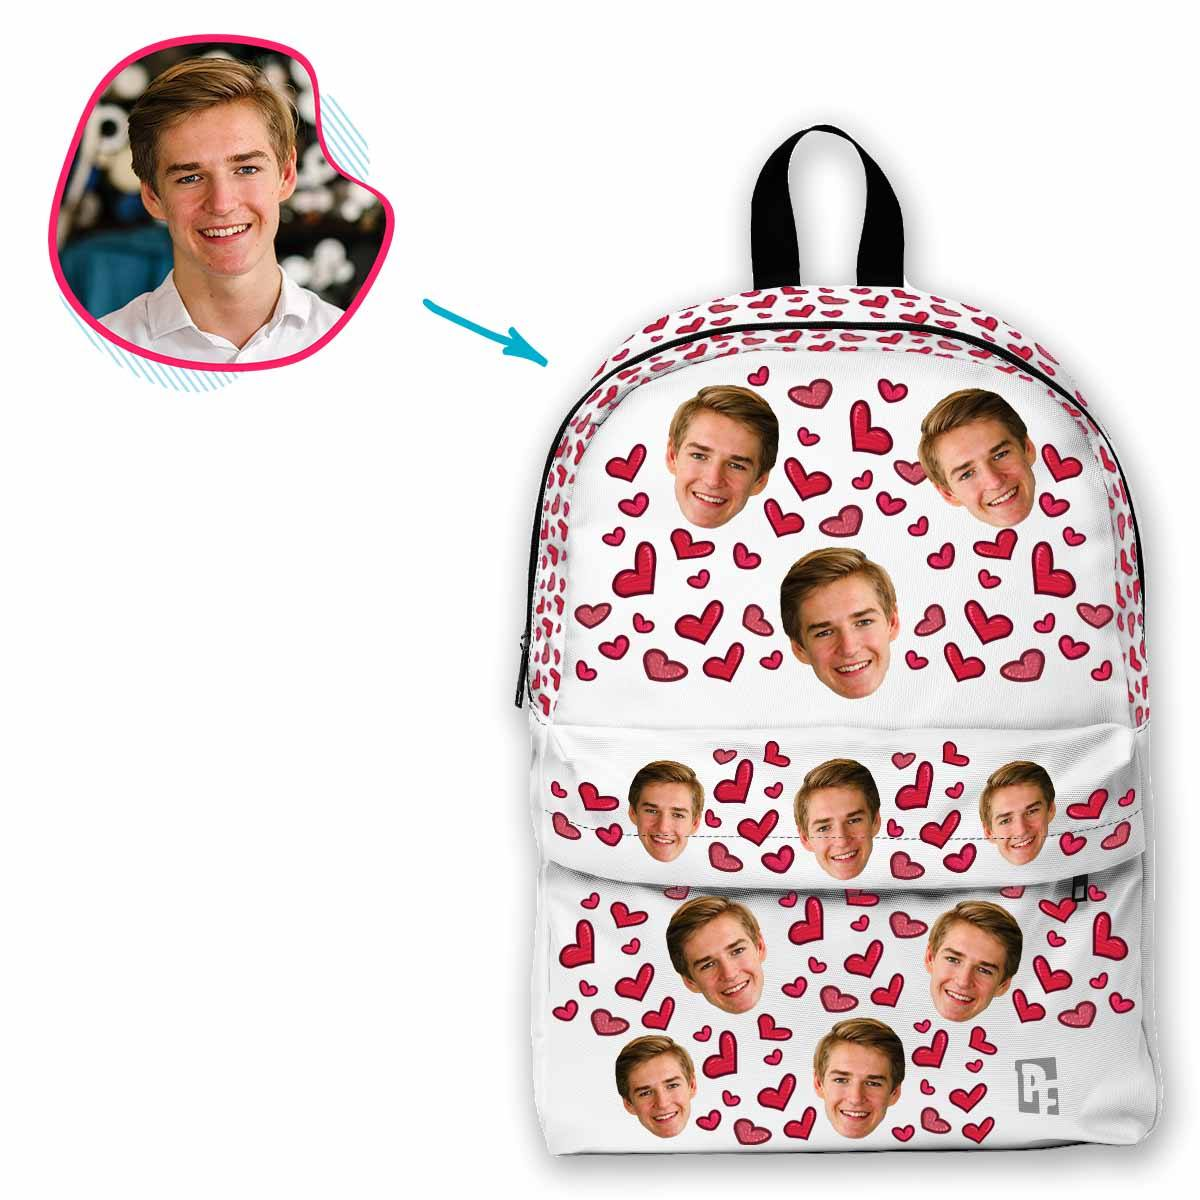 white Heart classic backpack personalized with photo of face printed on it